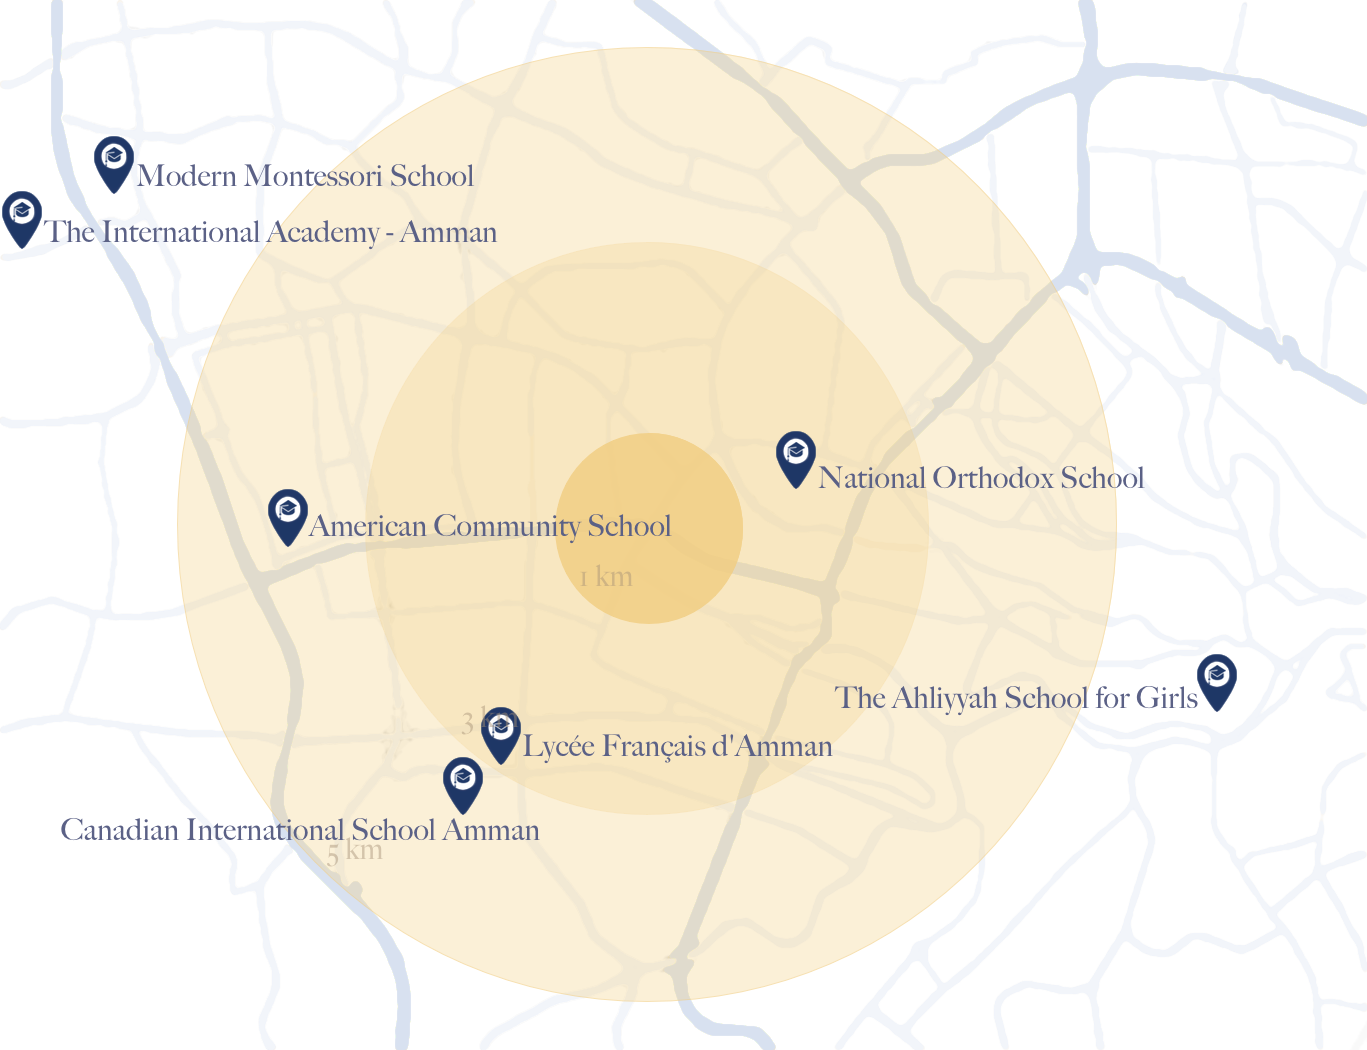 Map of Schools around The Ritz-Carlton Residences, Amman